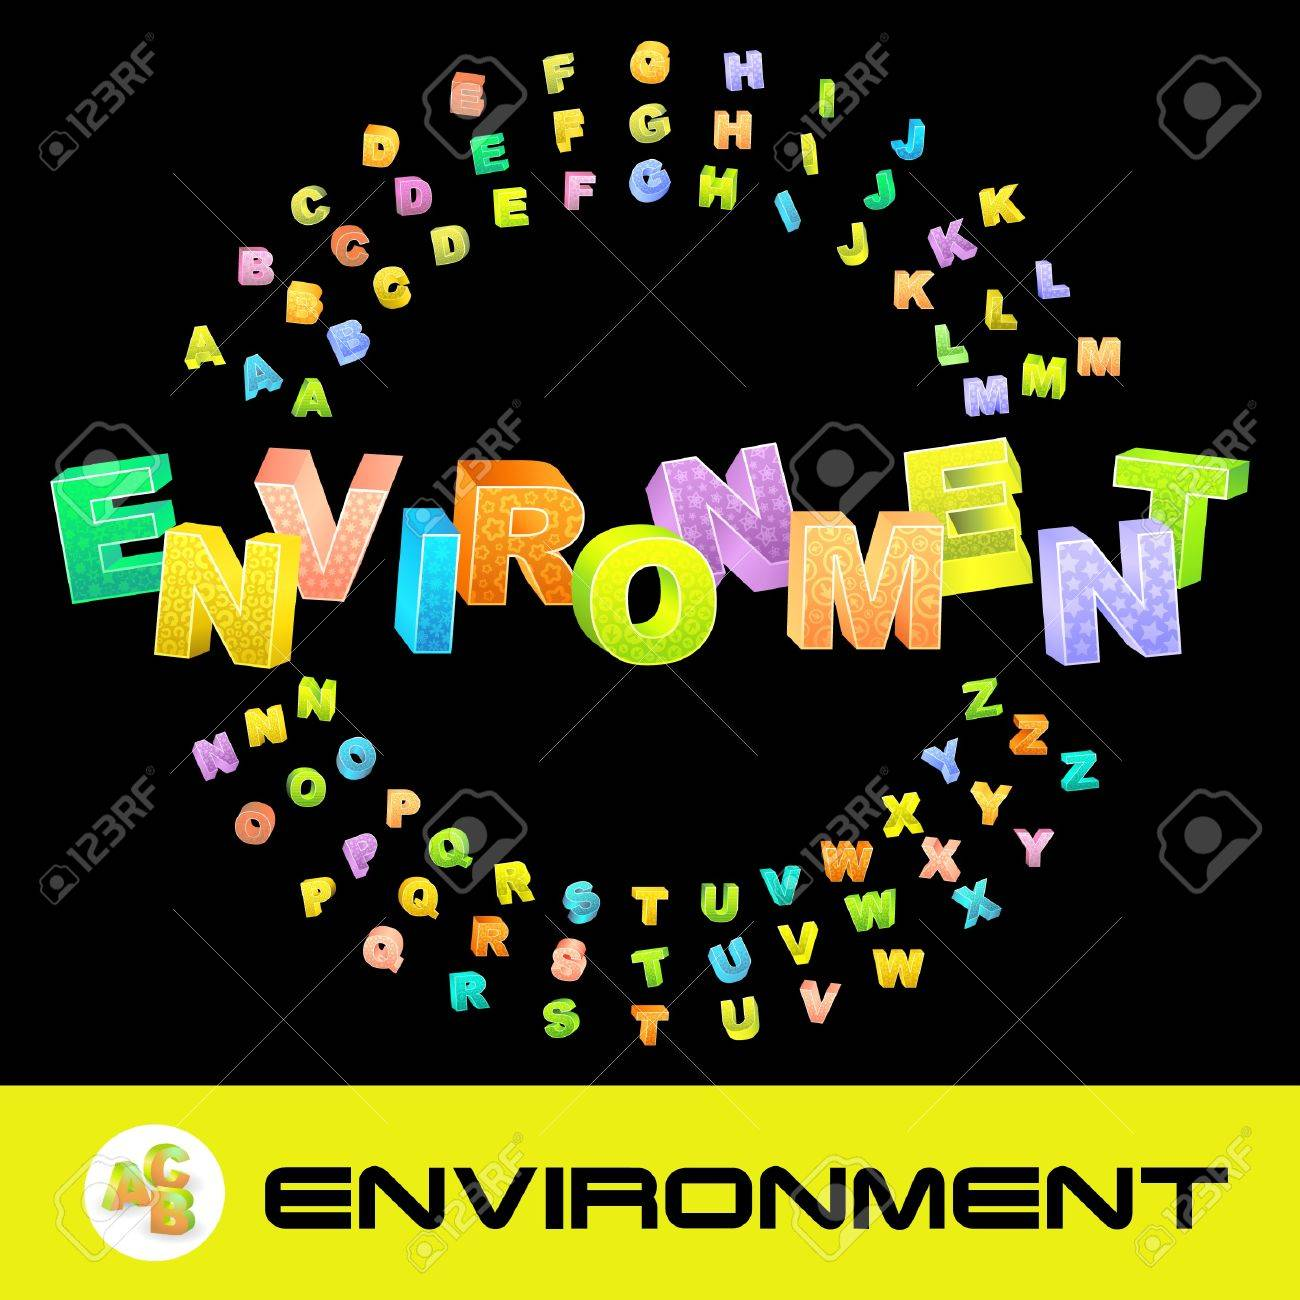 ENVIRONMENT. Vector 3d illustration with colored alphabet. Stock Vector - 8947934